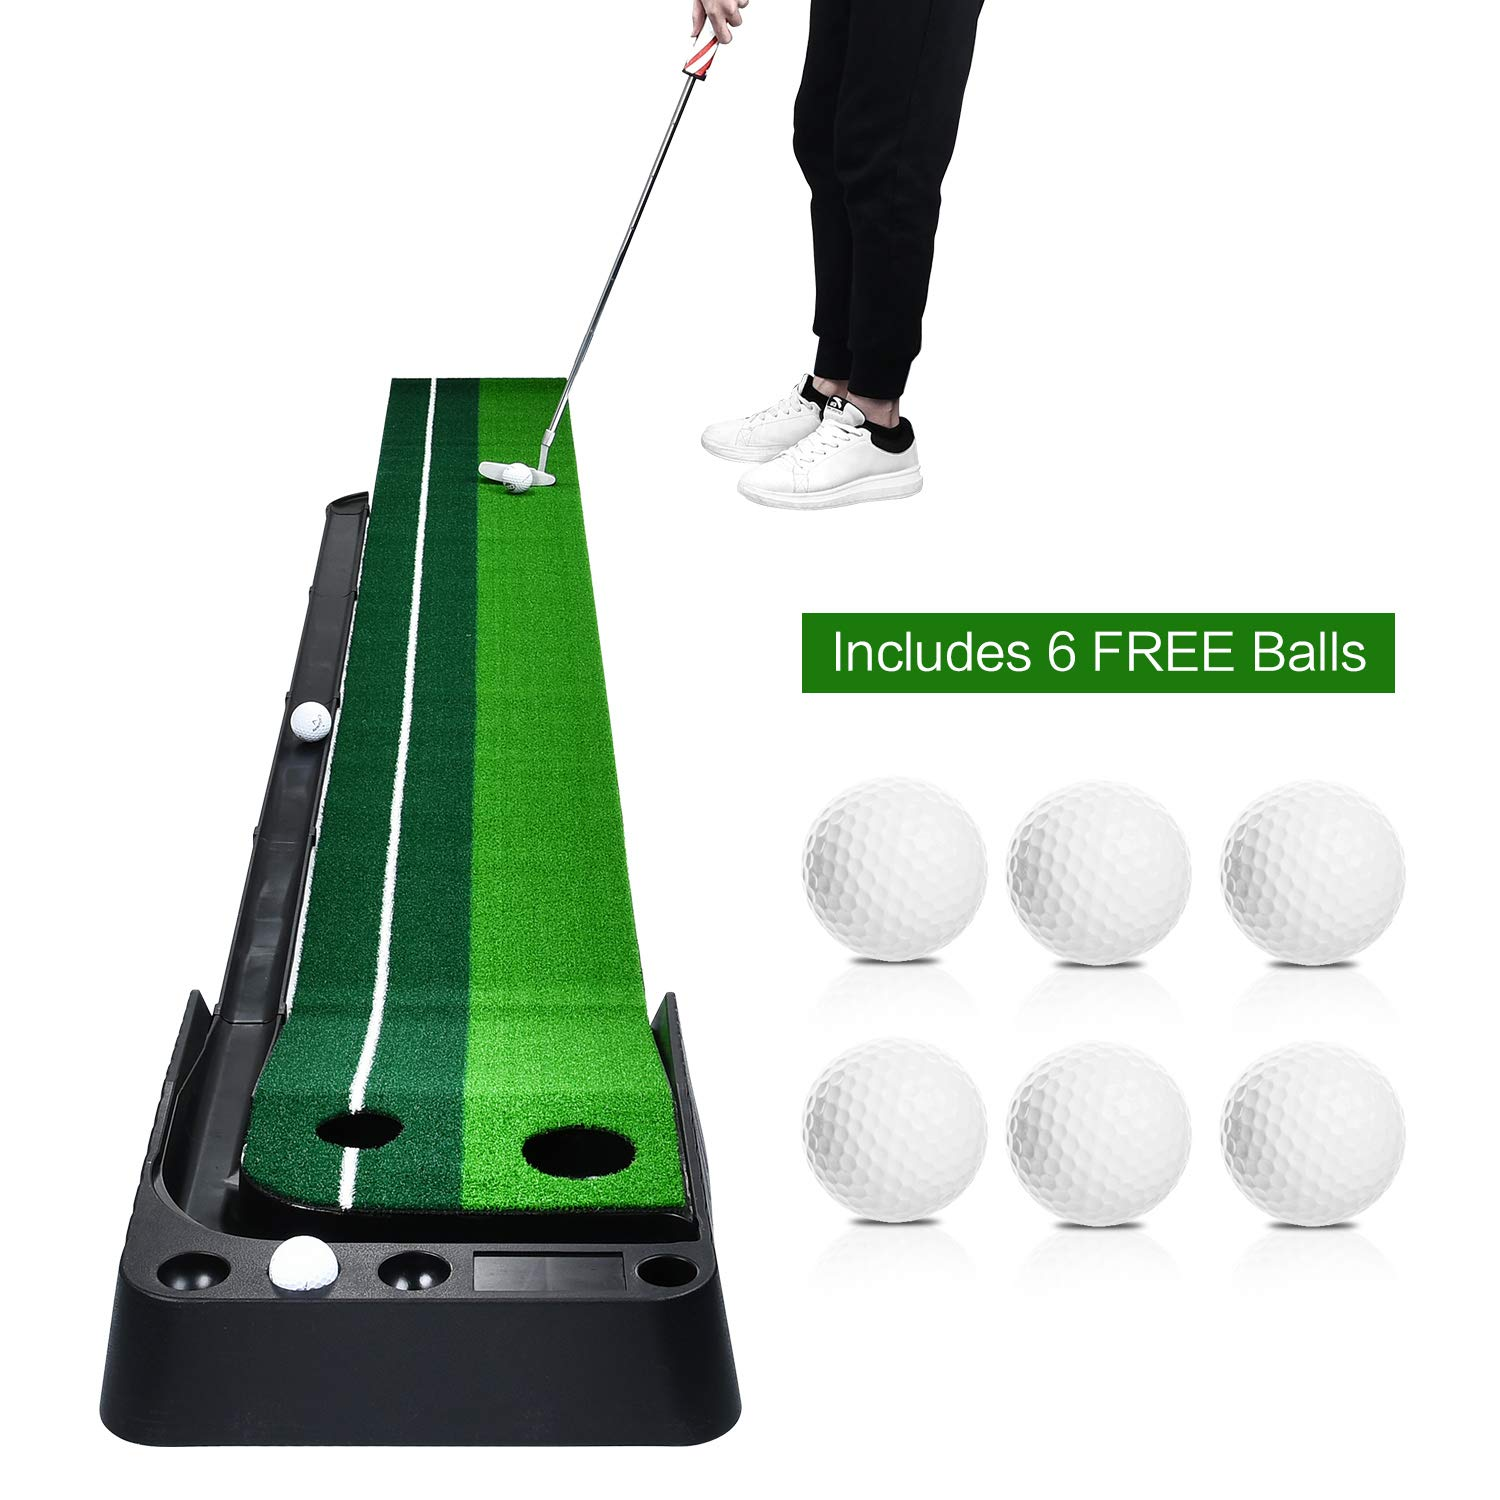 Champkey Indoor Golf Putting Green with 6 Golf Balls Portable Mat with Auto Ball Return Function